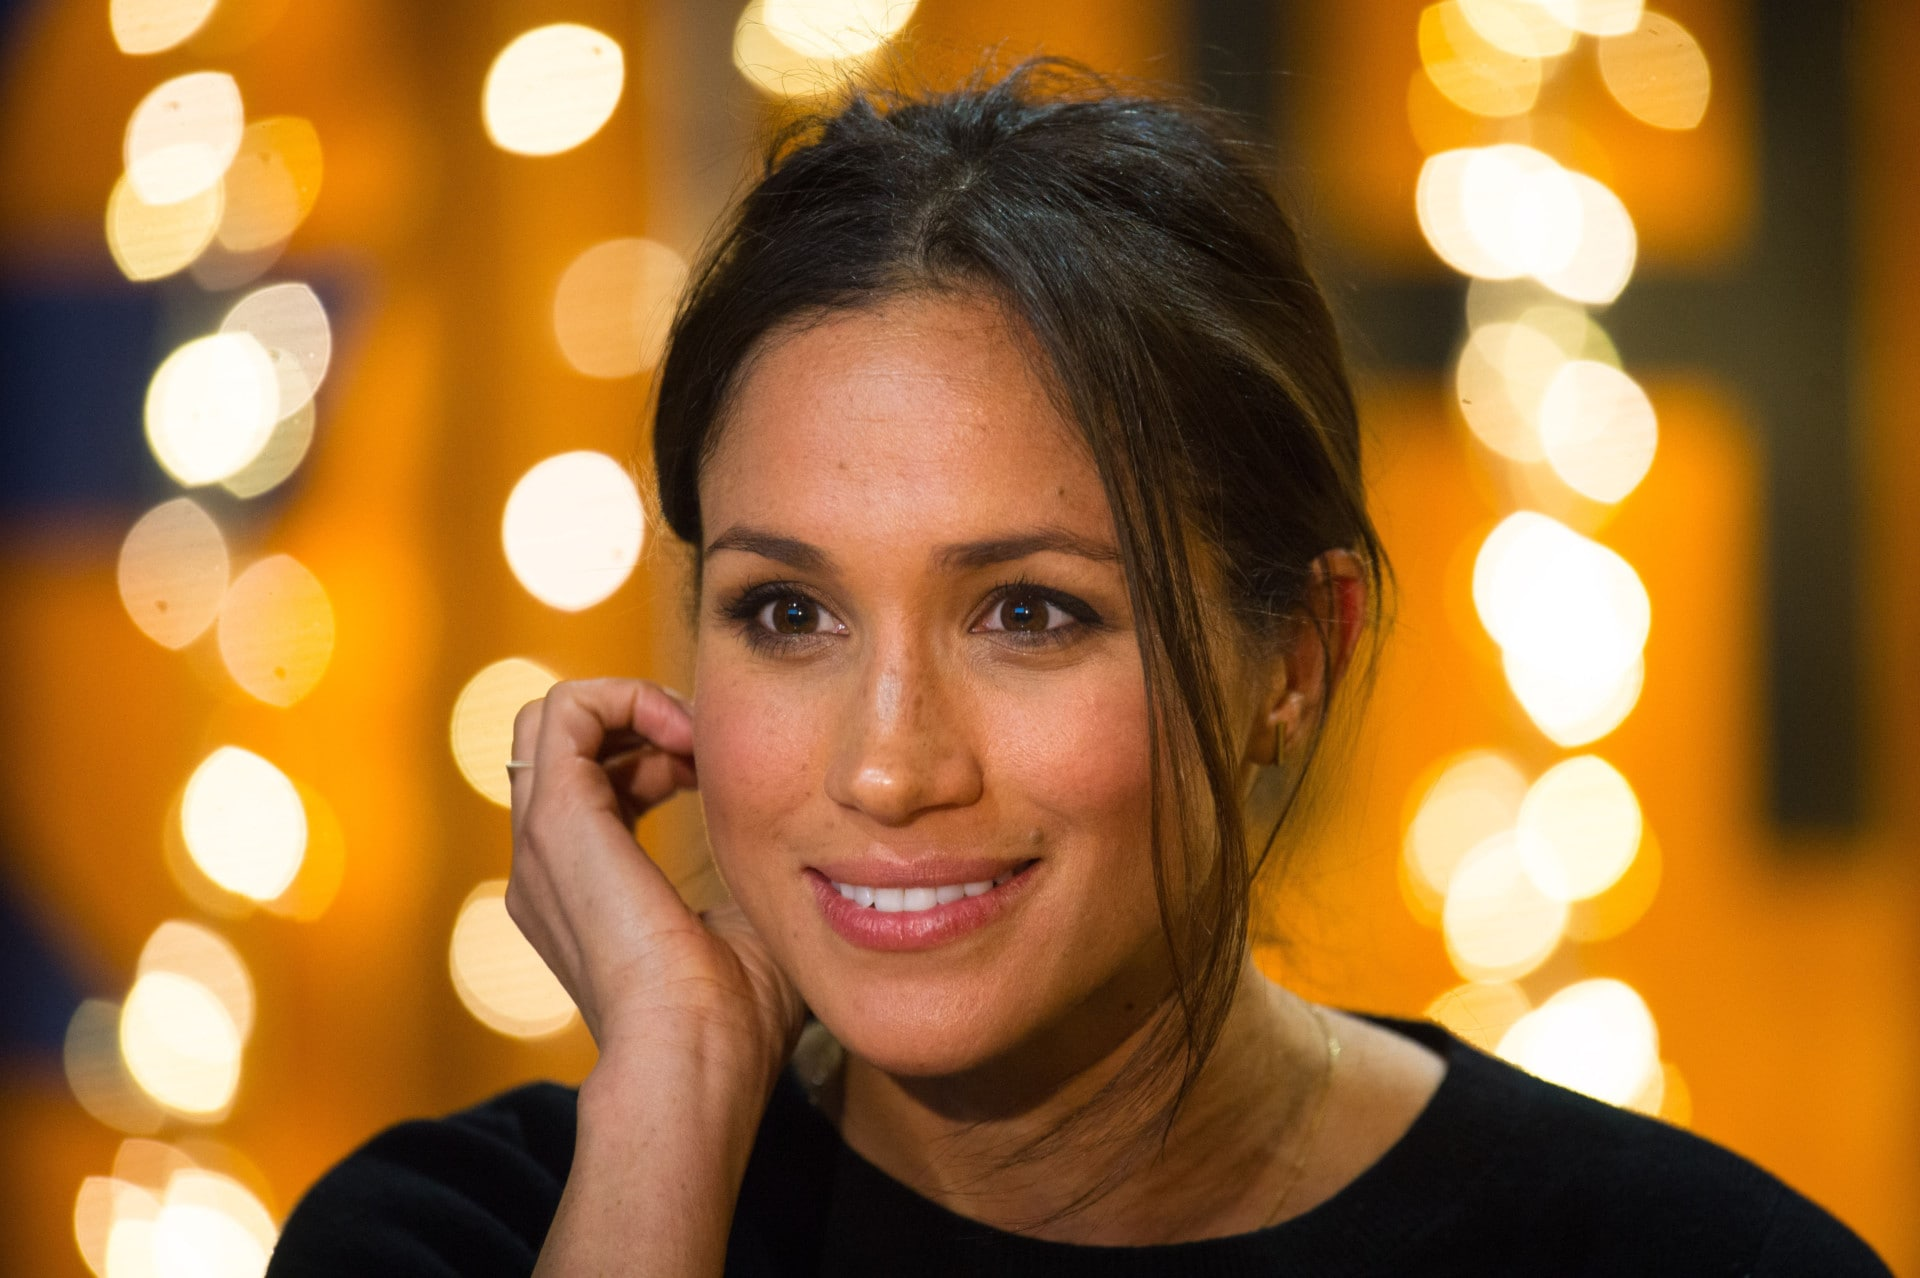 Meghan Markle breaks royal tradition with her new hairstyle